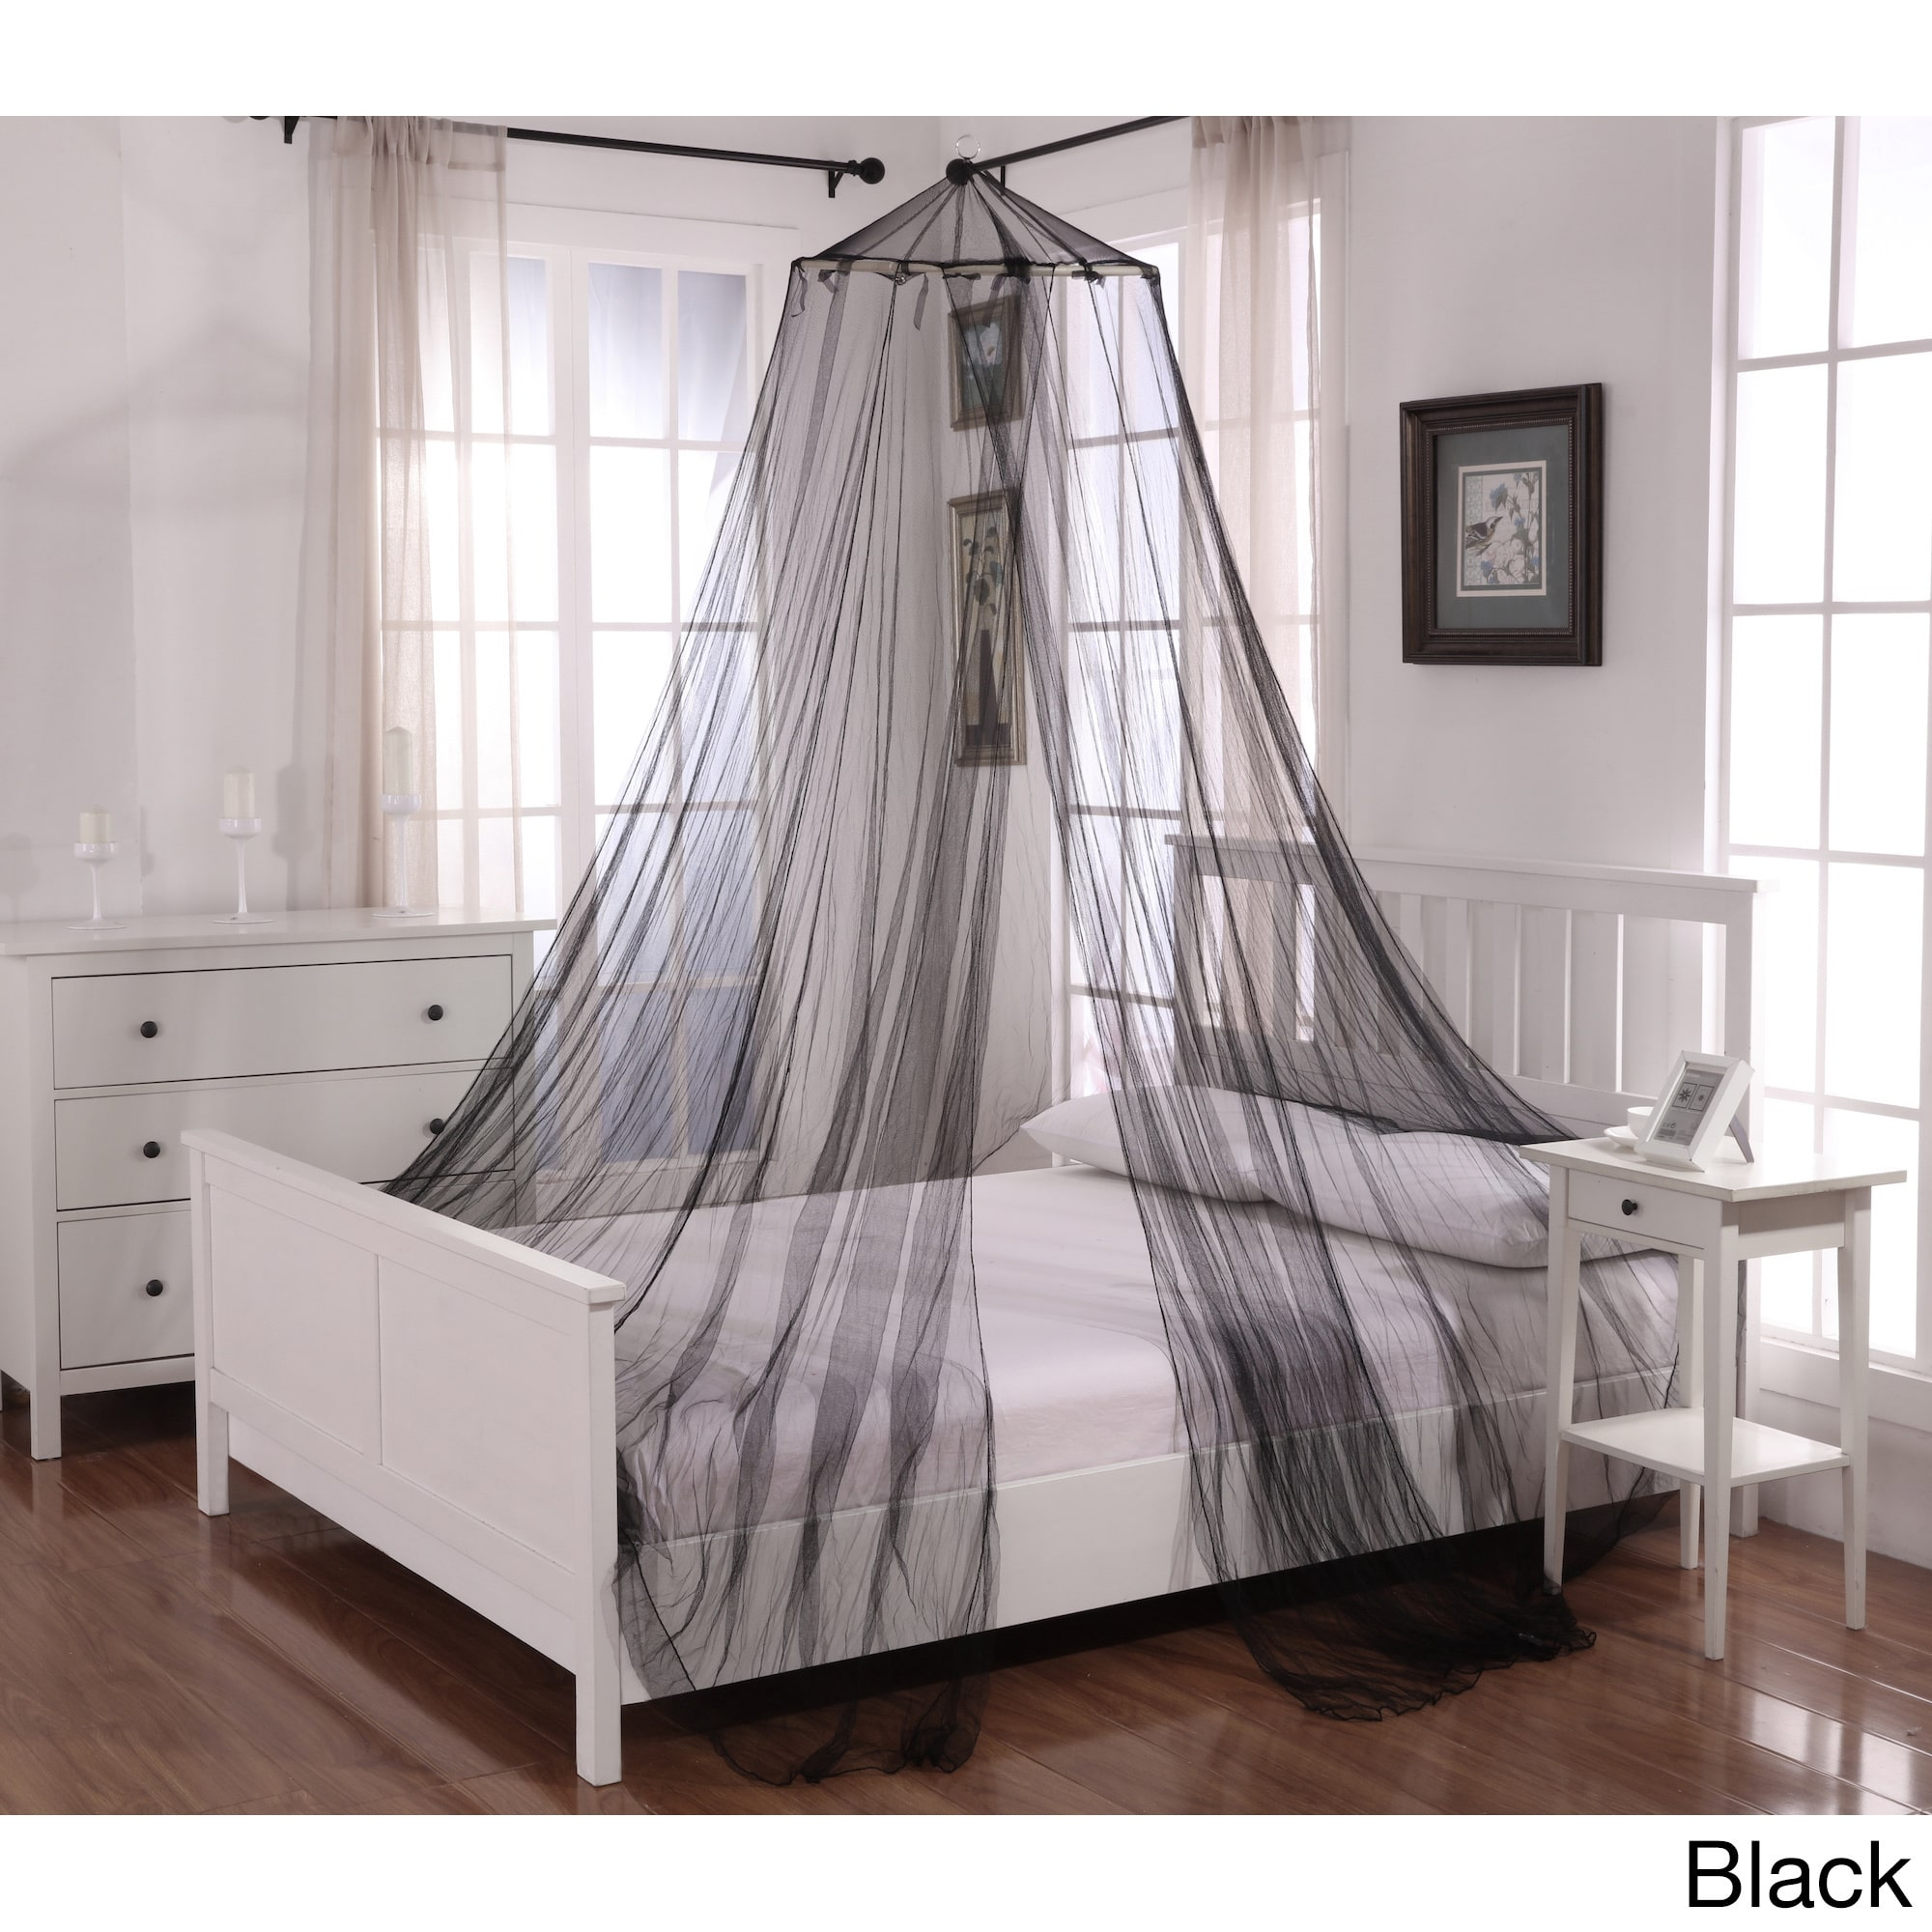 Oasis Round Hoop Polyester Sheer Mosquito Netting Bed Canopy - Walmart.com & Oasis Round Hoop Polyester Sheer Mosquito Netting Bed Canopy ...